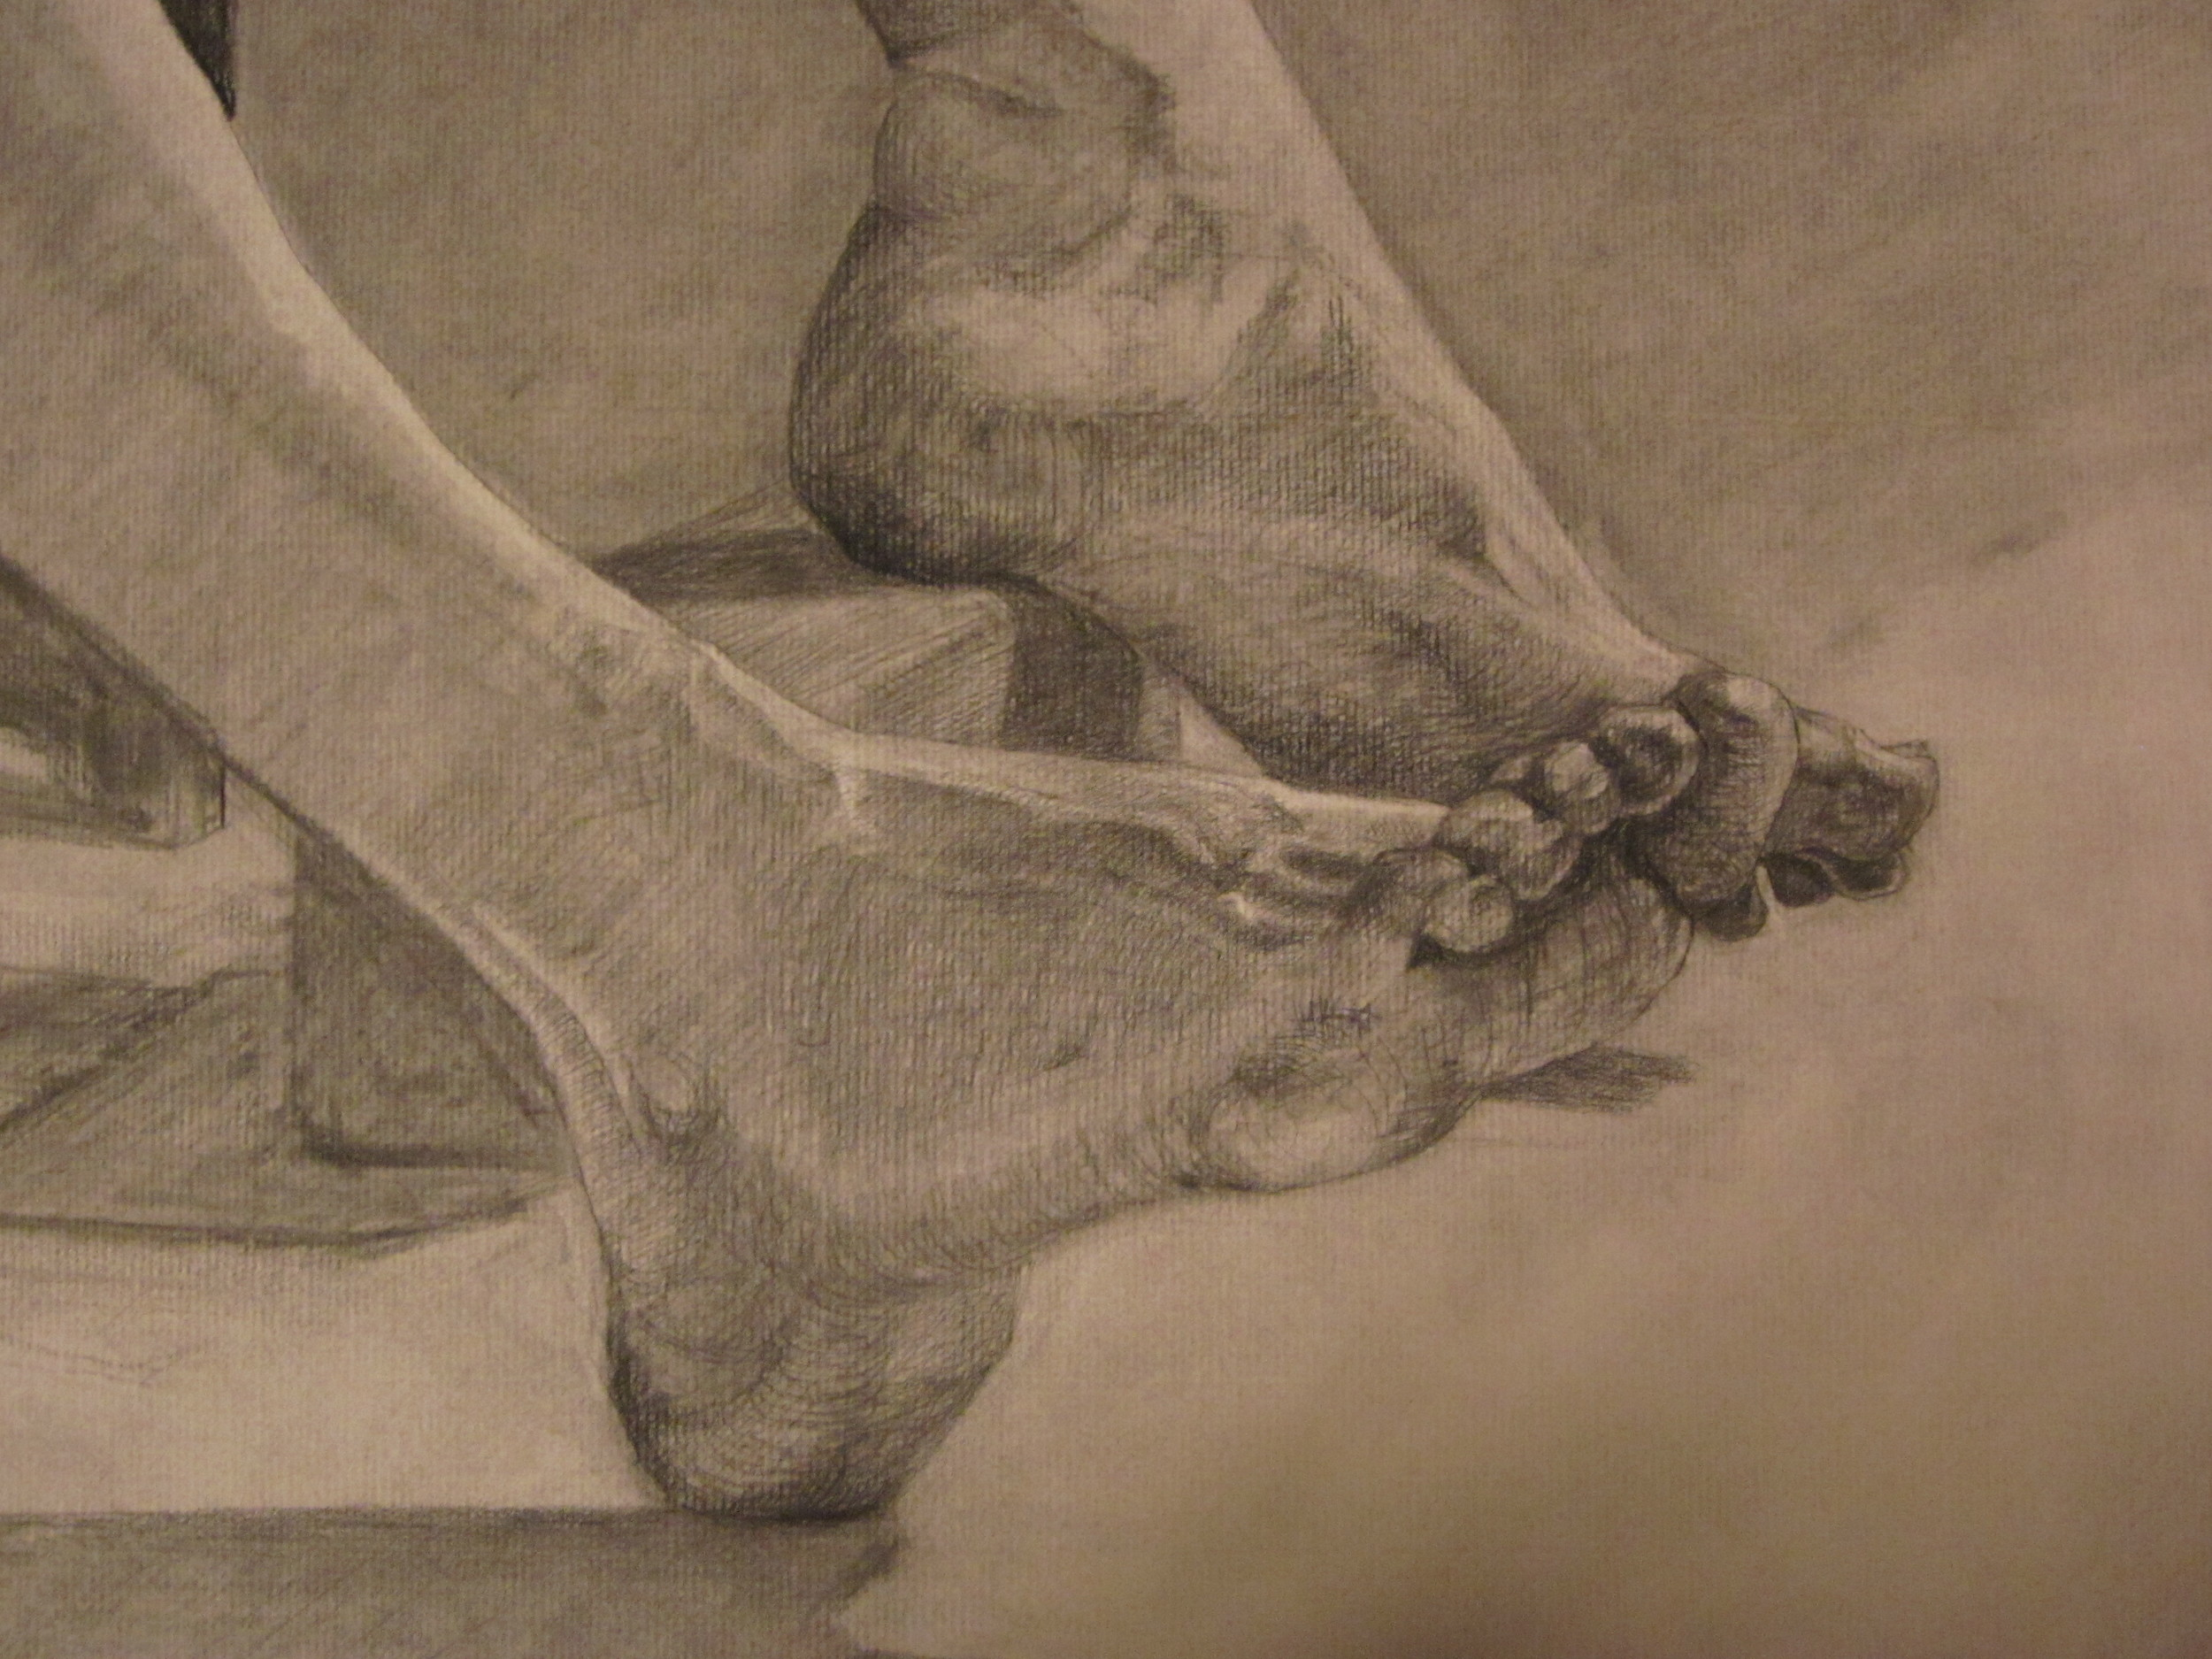 Foot Study, approximately 13x15, 2011